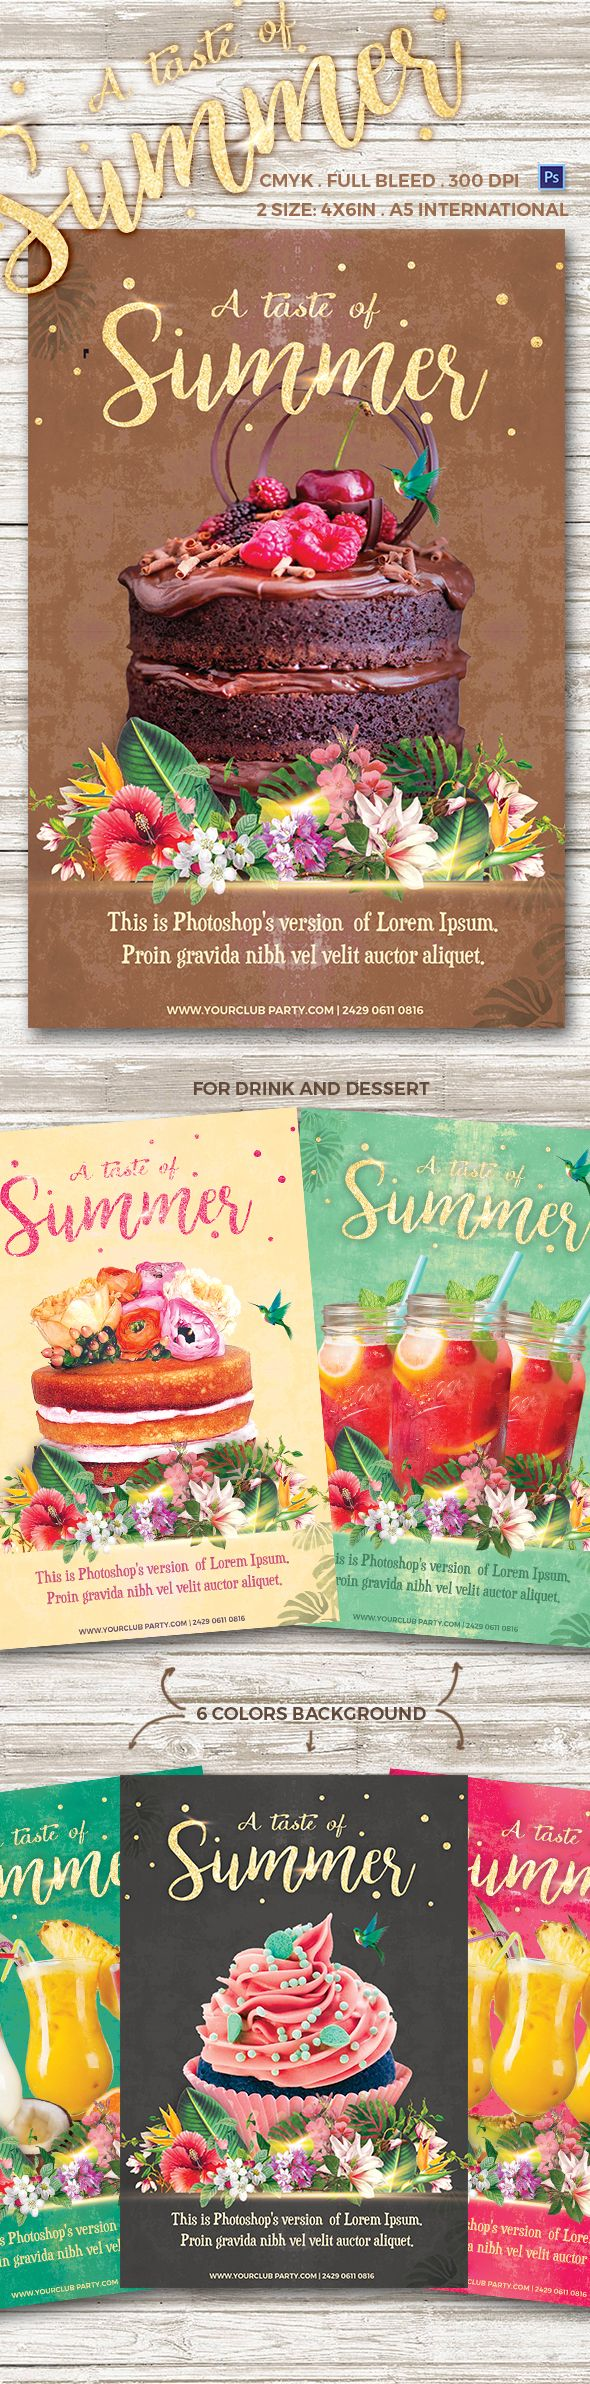 A Taste of Summer Flyer Template bakery, beach, blue, cake, candy, chocolate, cocktail, Cup Cake, dessert, drink, flowers, fruits, green, holiday, ice cream, juice, leaves, mousse, pink, promotion, restaurant, summer, sunny, sweet, tart, taste, Tiramisu, tropical, turquoise, waffle